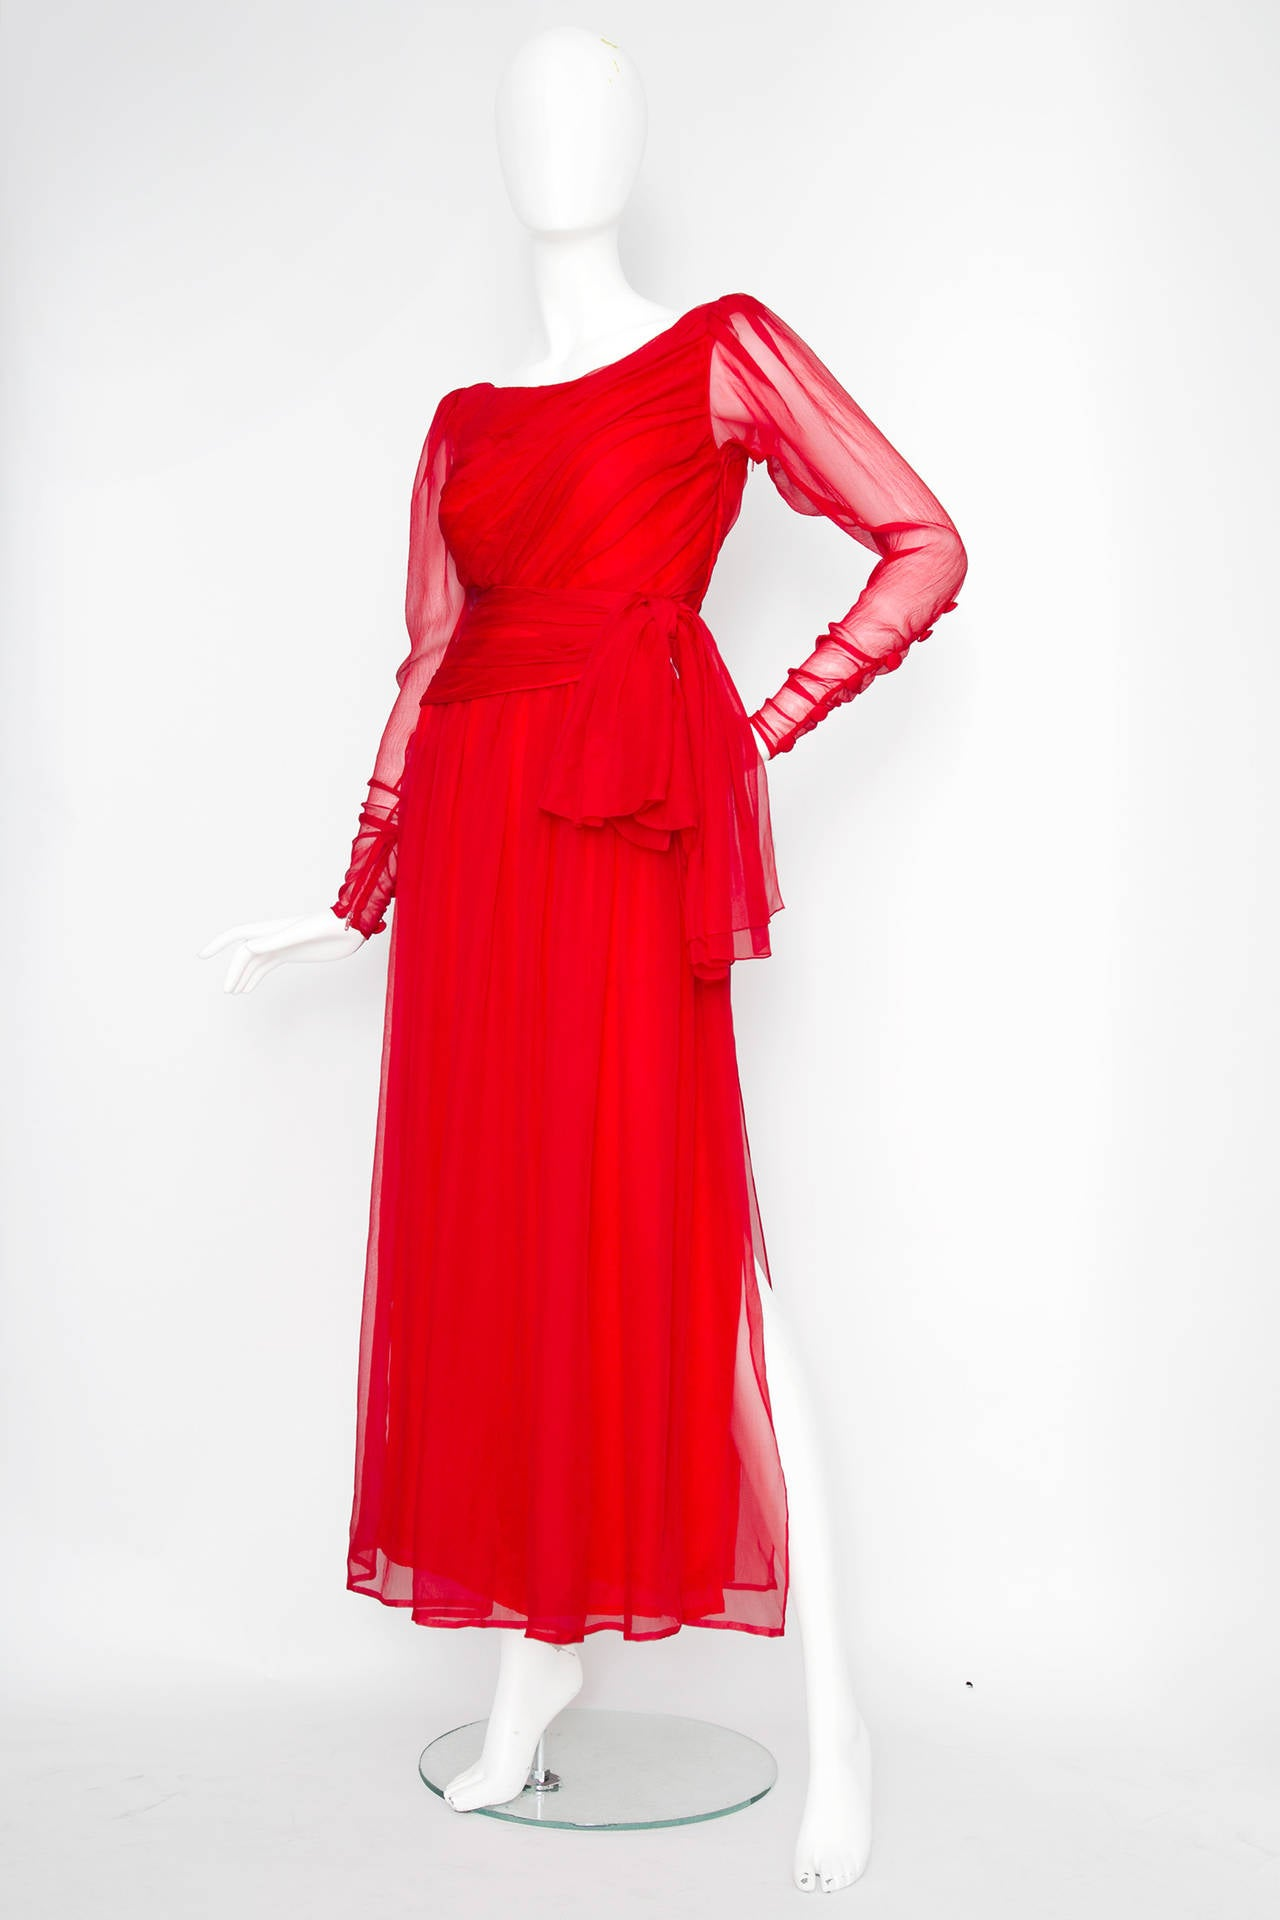 An absolutely stunning and very rare 1983 Yves Saint Laurent haute couture gown in bright red silk chiffon. The gown has a scoop neckline and long sheer sleeves with button details and a zipper closure on the cuffs. The gown is fully lined and has a